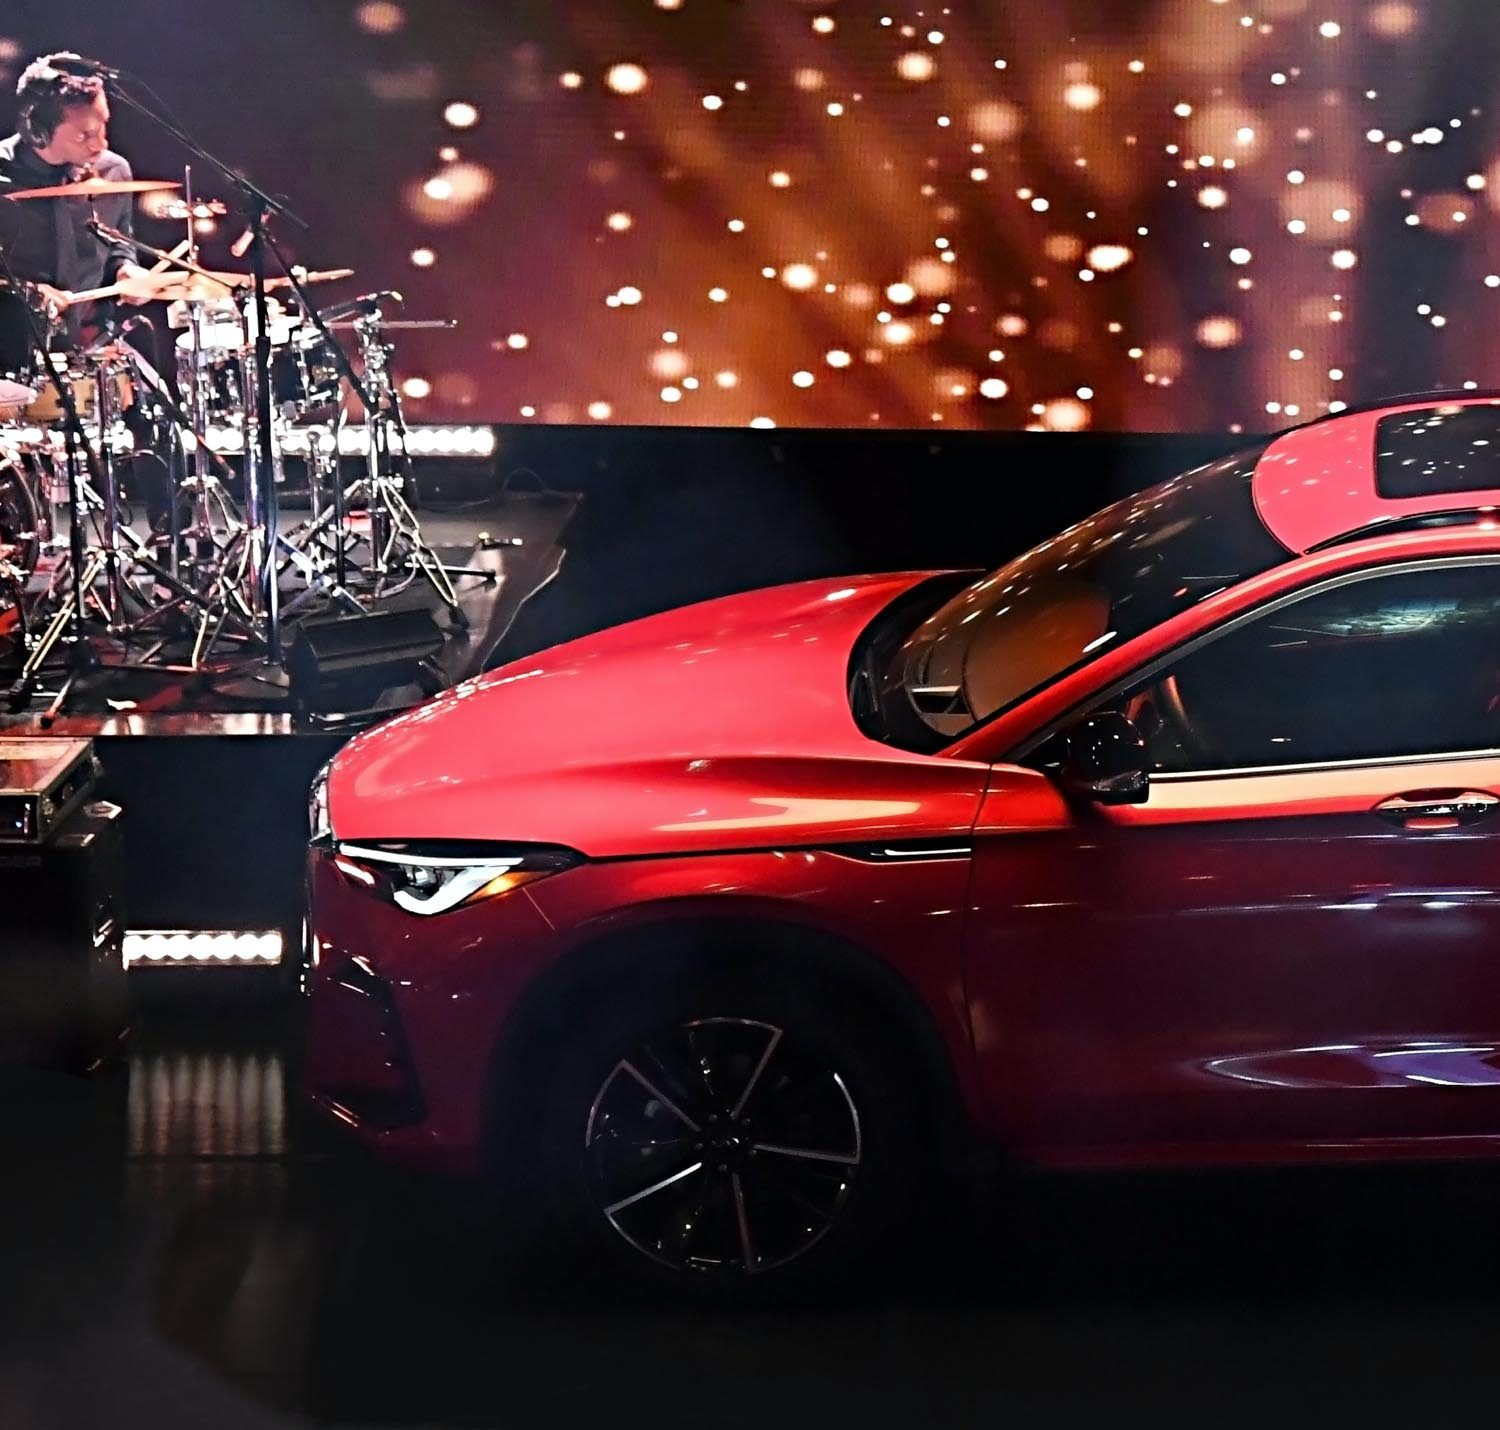 The hood and front of a red new 2022 INFINITI QX55 crossover on stage.